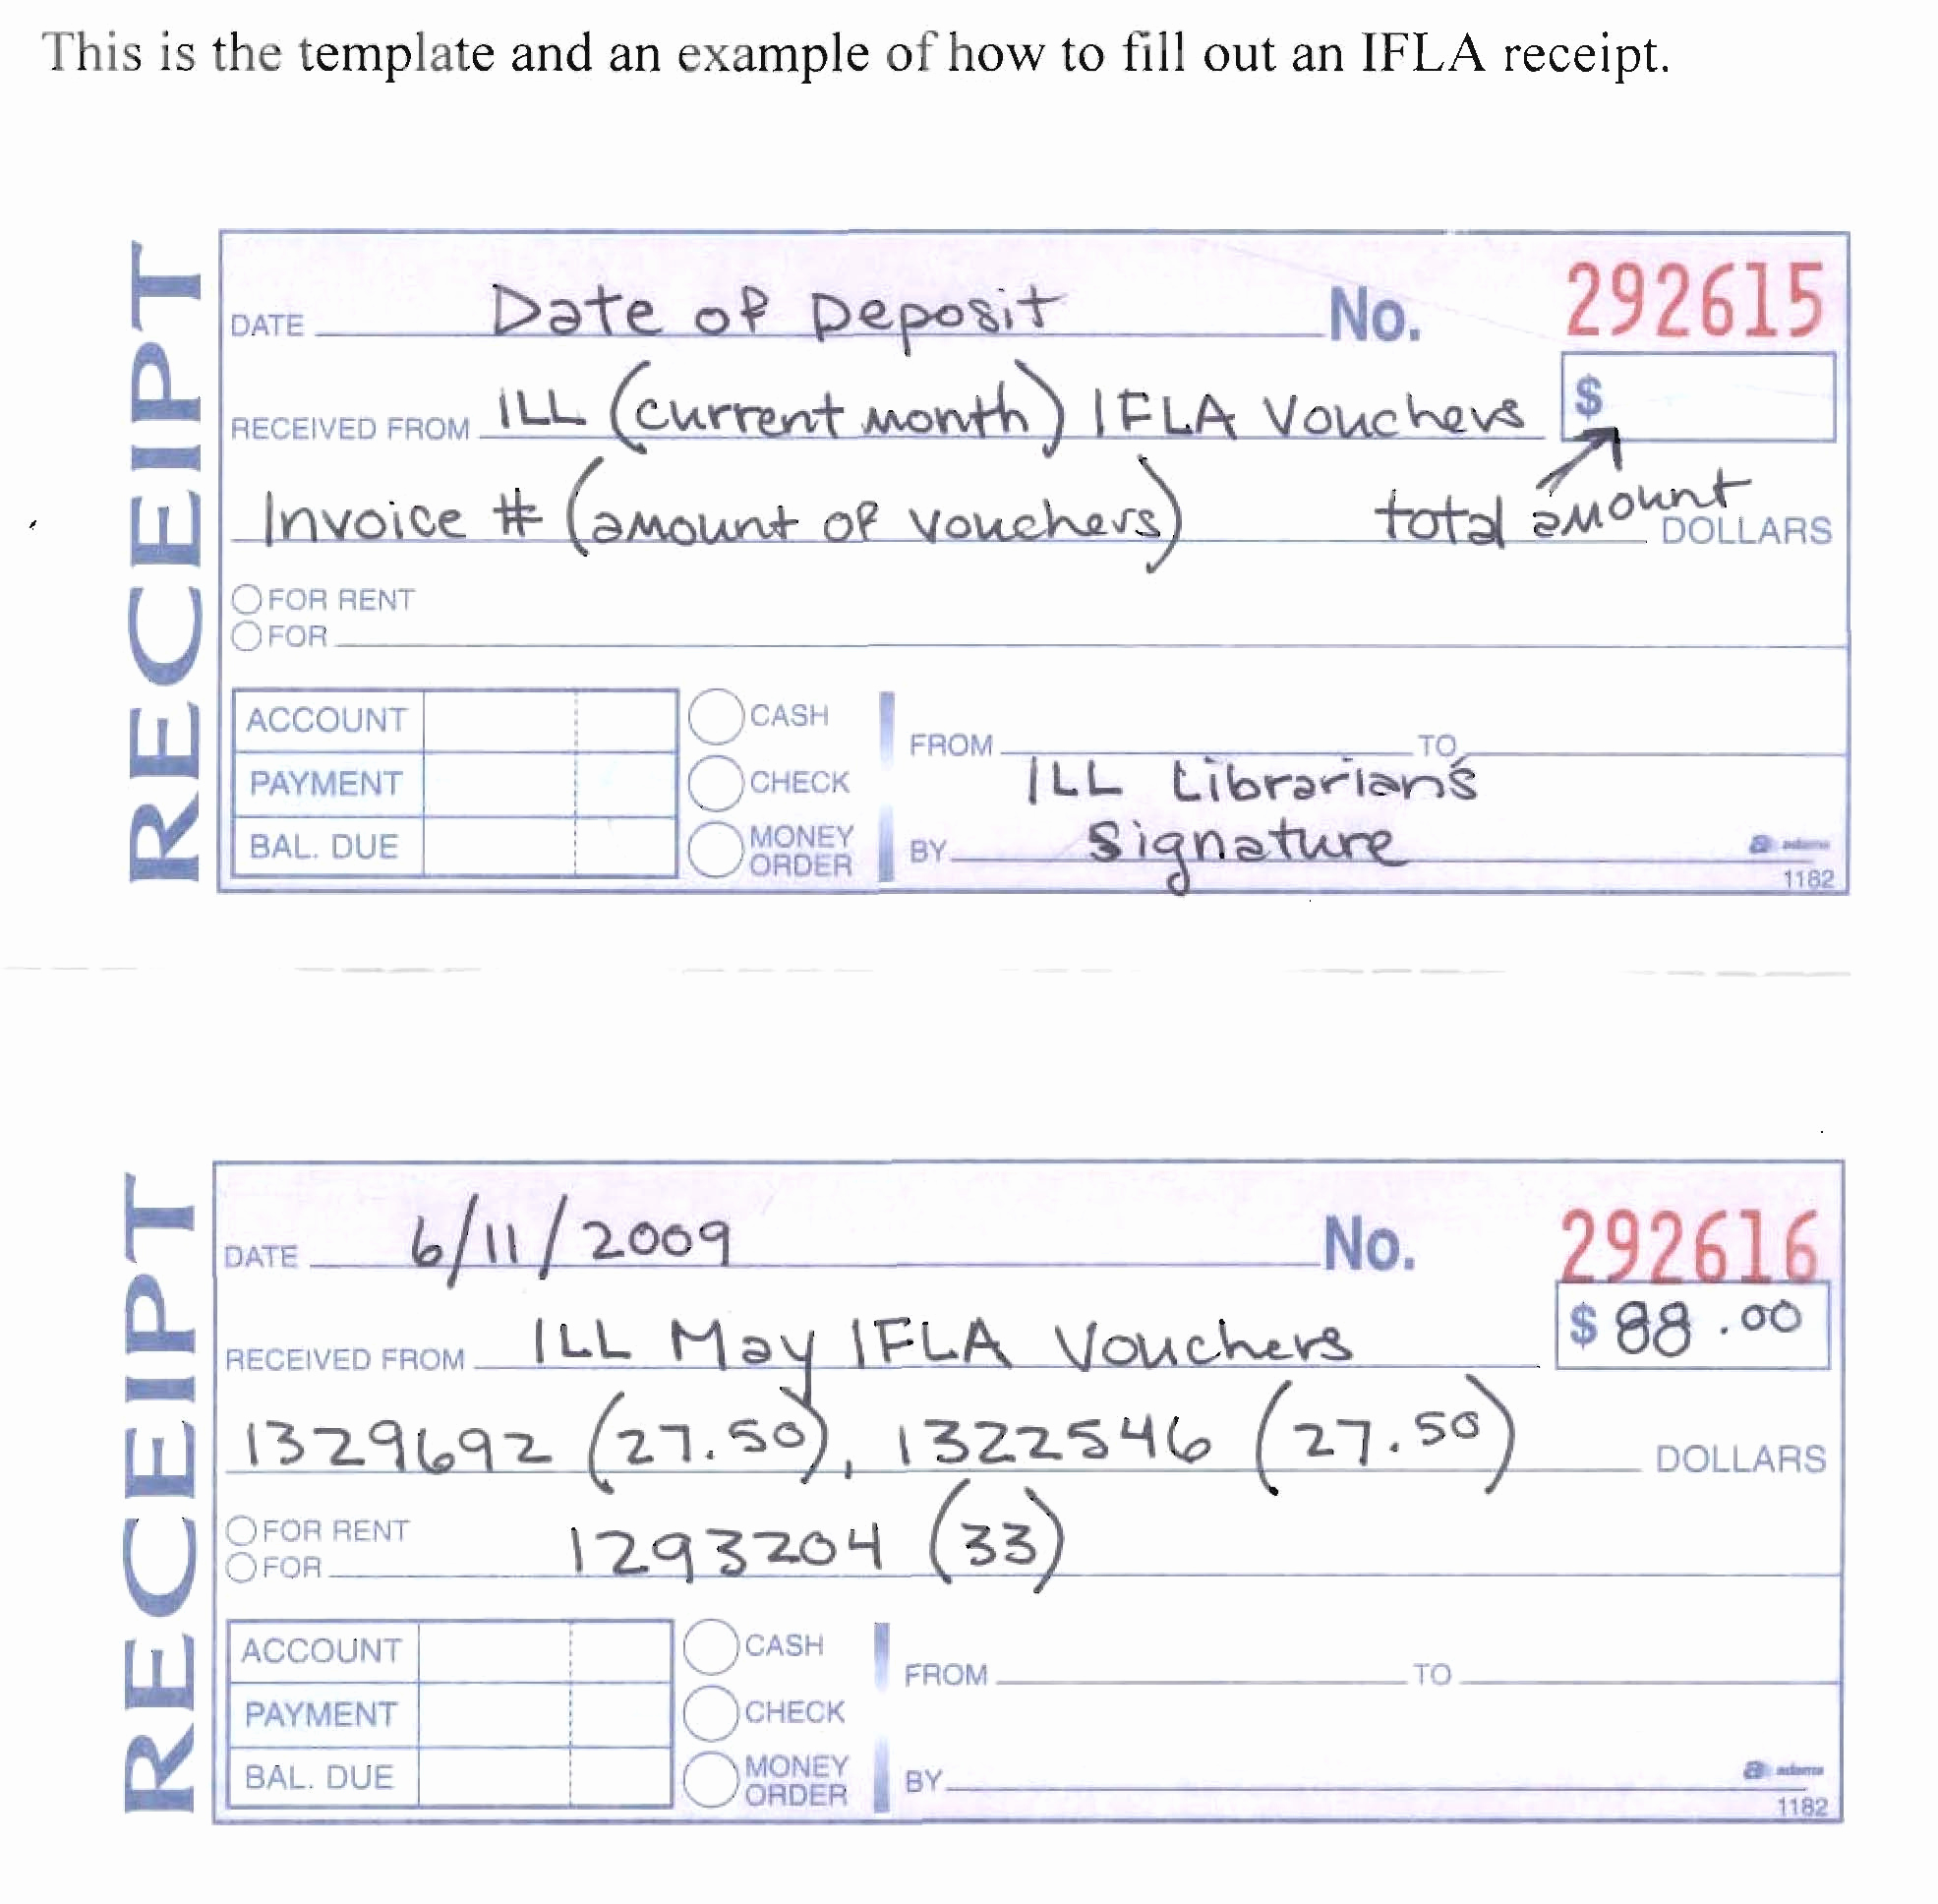 How to Make A Receipt Elegant Wils Ill Lending Services ifla Vouchers